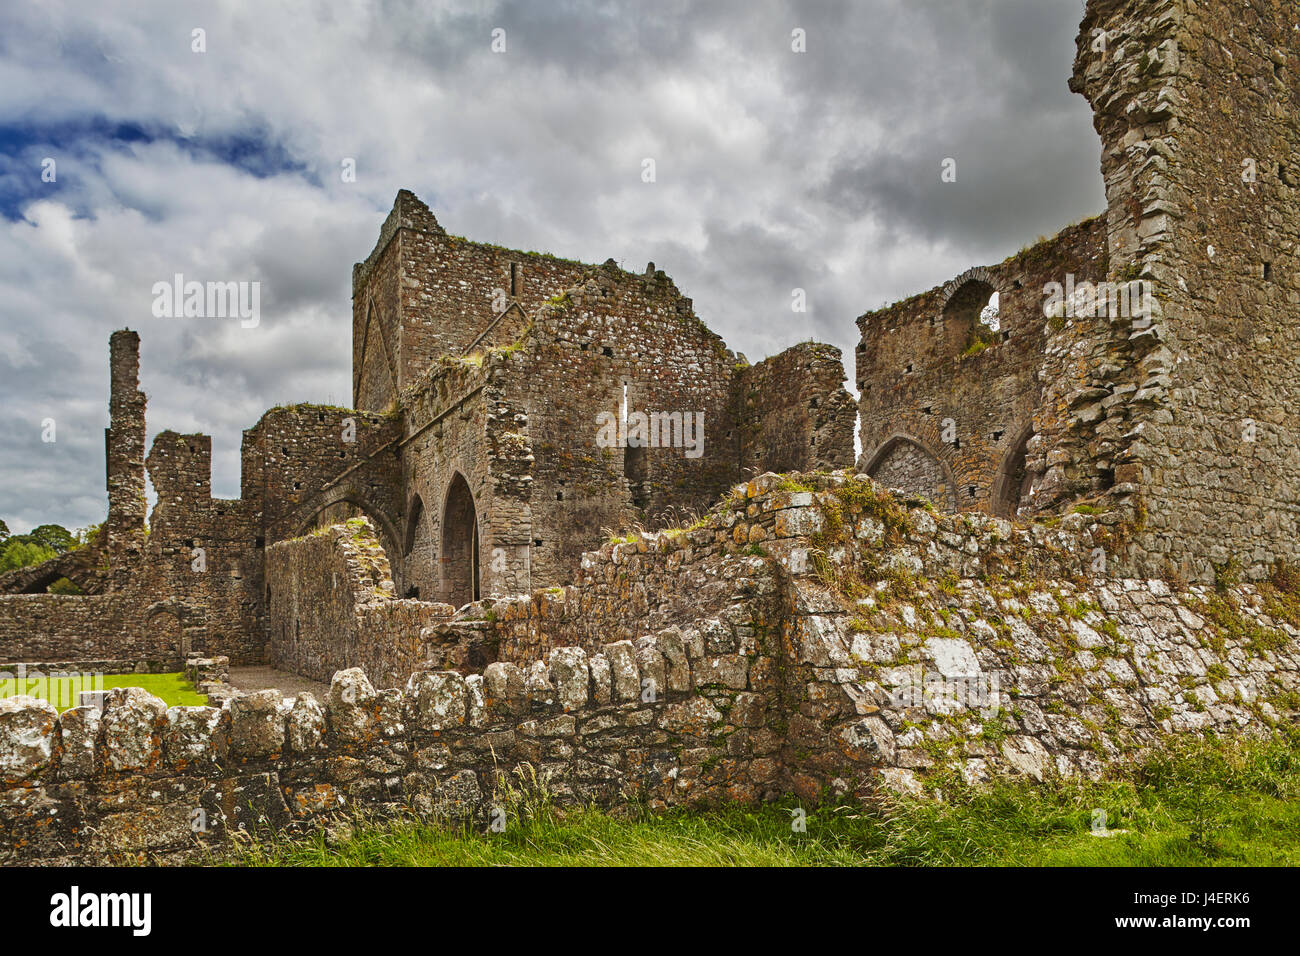 The ruins of Hore Abbey, near the ruins of the Rock of Cashel, Cashel, County Tipperary, Munster, Republic of Ireland, - Stock Image